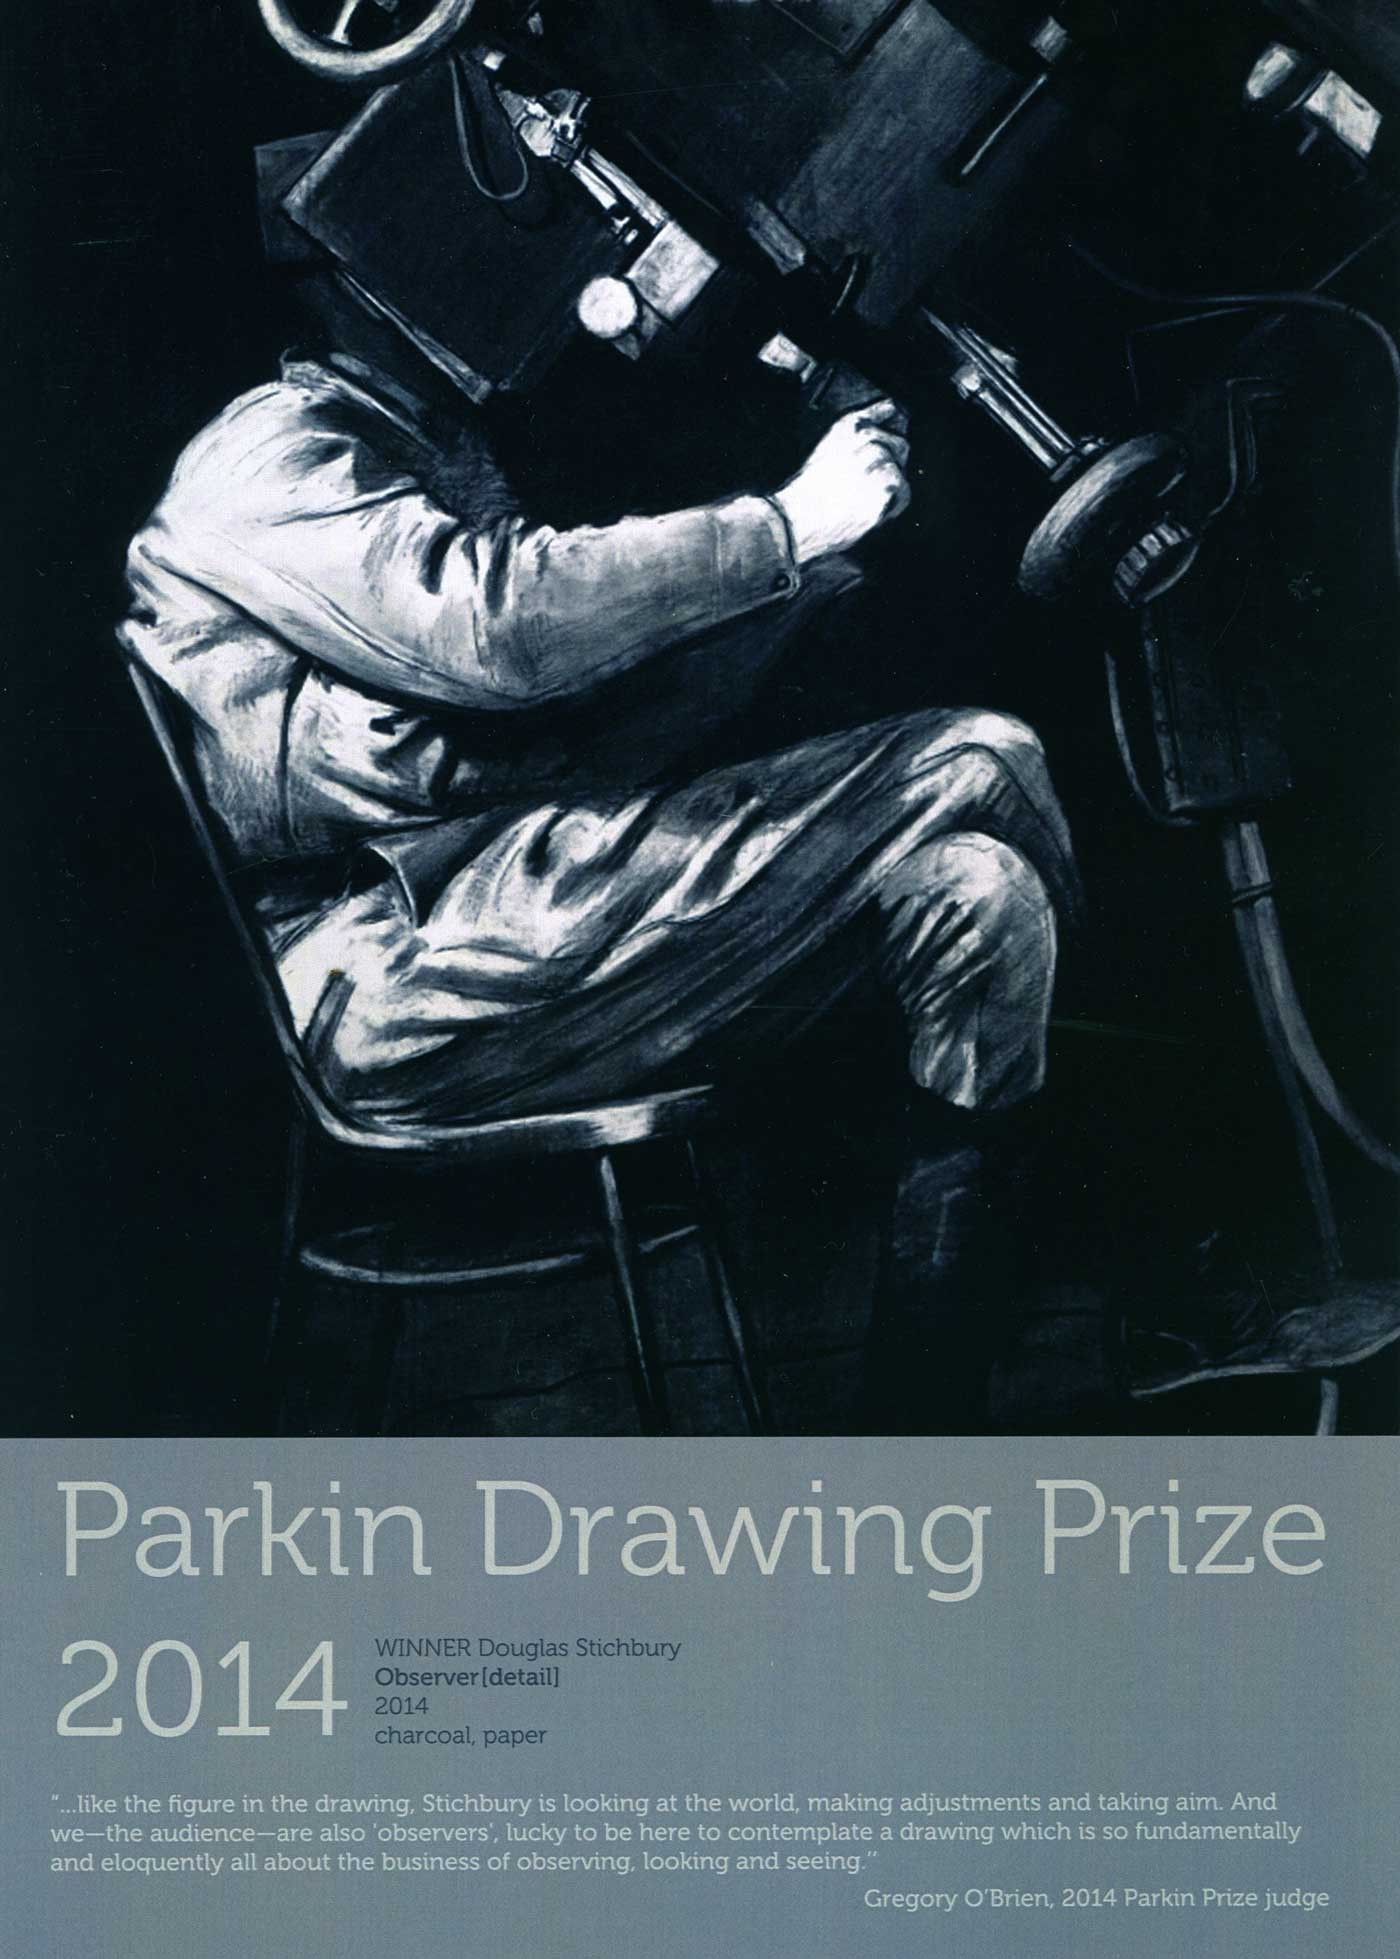 Congratulations Douglas Stichbury    Winner of the 2014 Parkin Drawing Prize